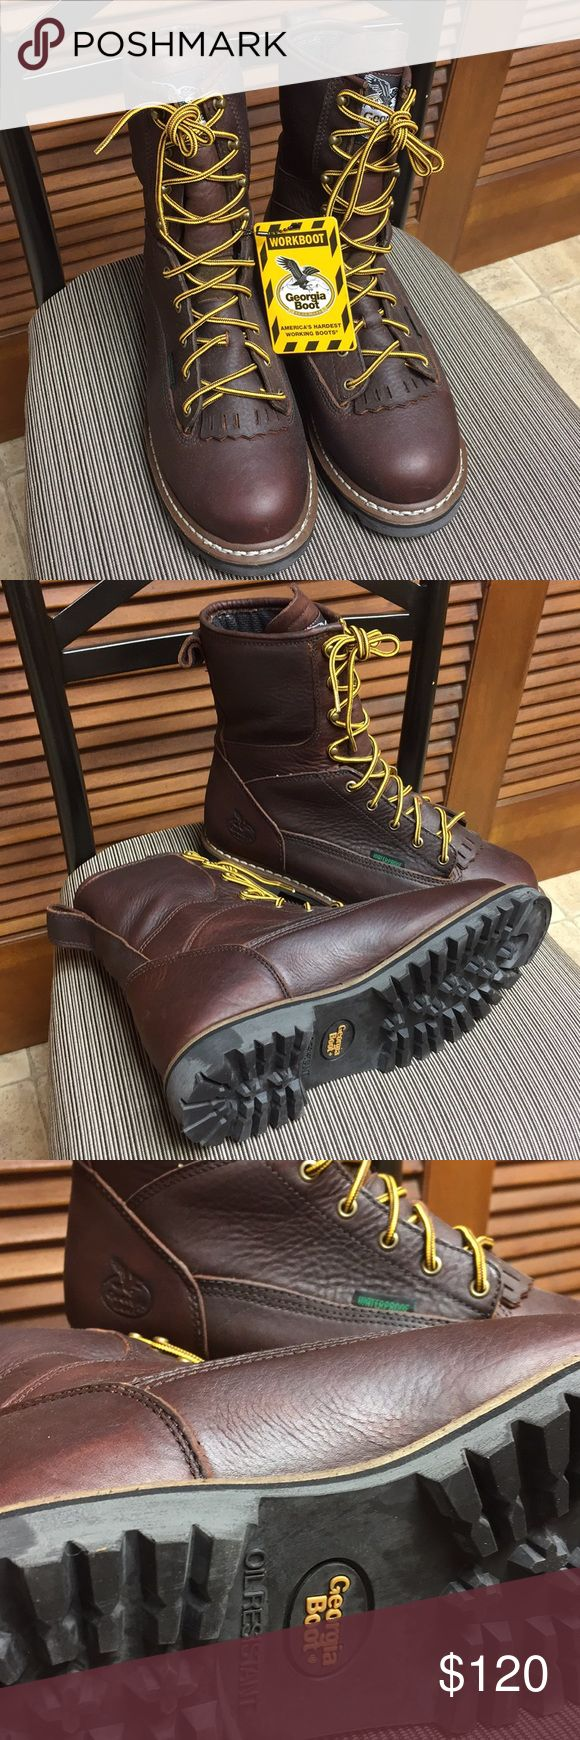 Georgia Boot waterproof Logger Boots NWT Georgia Boots, size 9.5W, leather low heel waterproof logger boots, they have oil resistant soles, never worn. See Georgia Boot.com listed for $180. Hard working shoes, will NOT have original box. Georgia Boots Shoes Boots